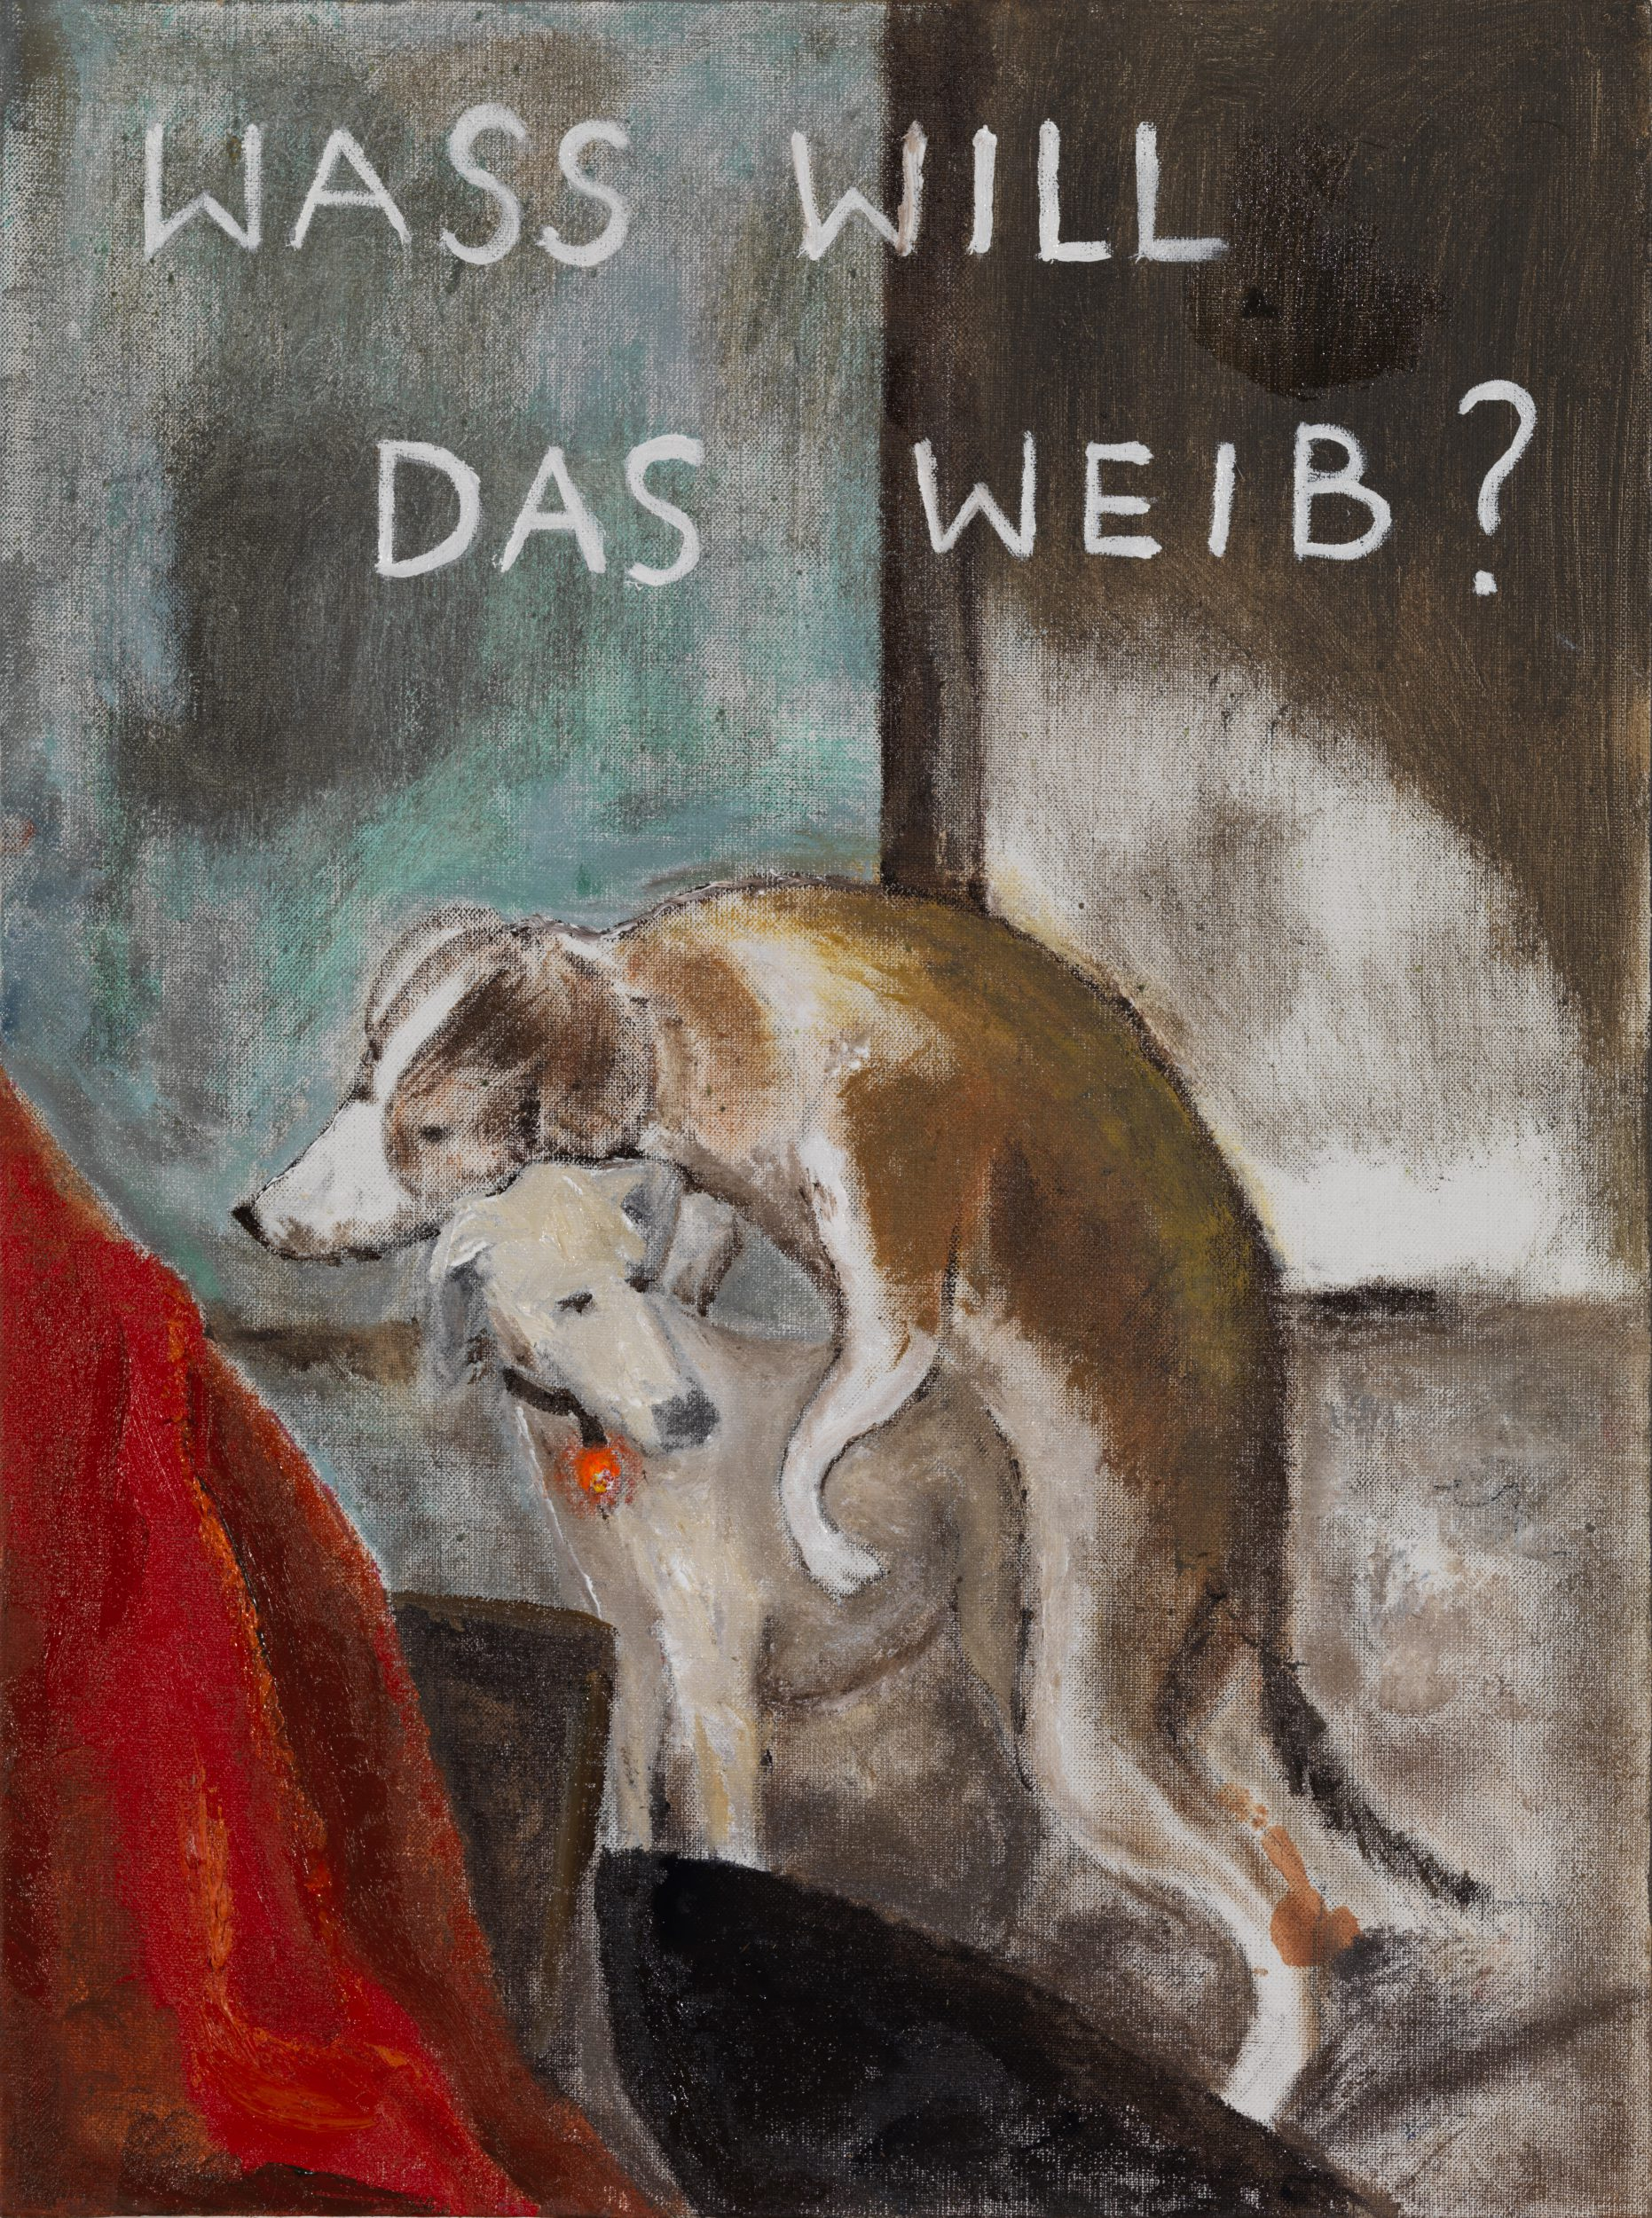 "Wass Will Das Weib ? Based on a detail of ""Brothelscene"" by Frans Van Mieris The Elder c1658-59"